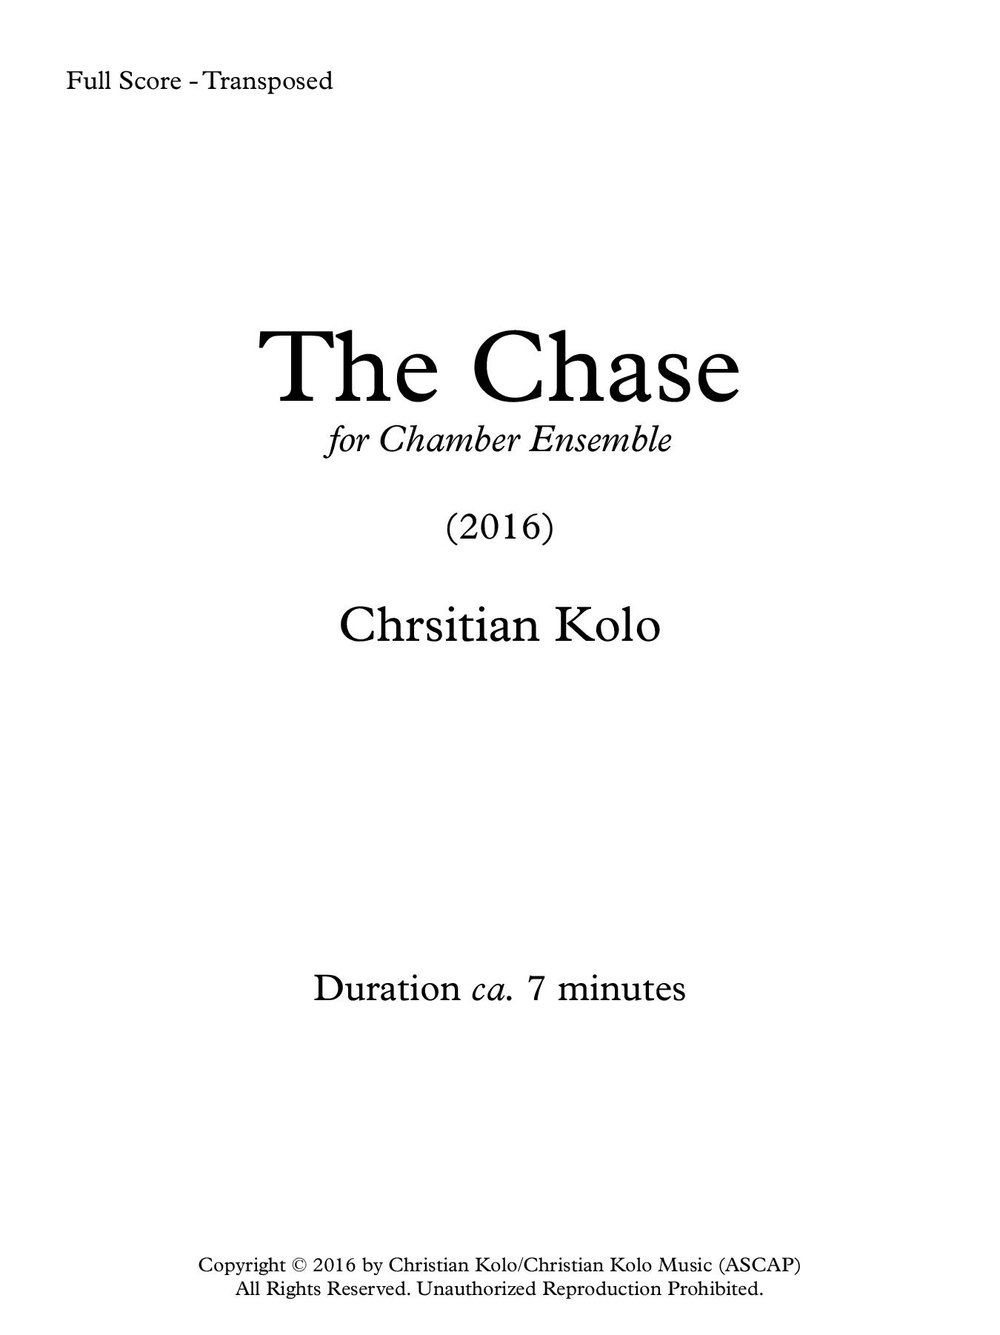 The Chase (Works Cover) - Chamber Ensemble.jpg